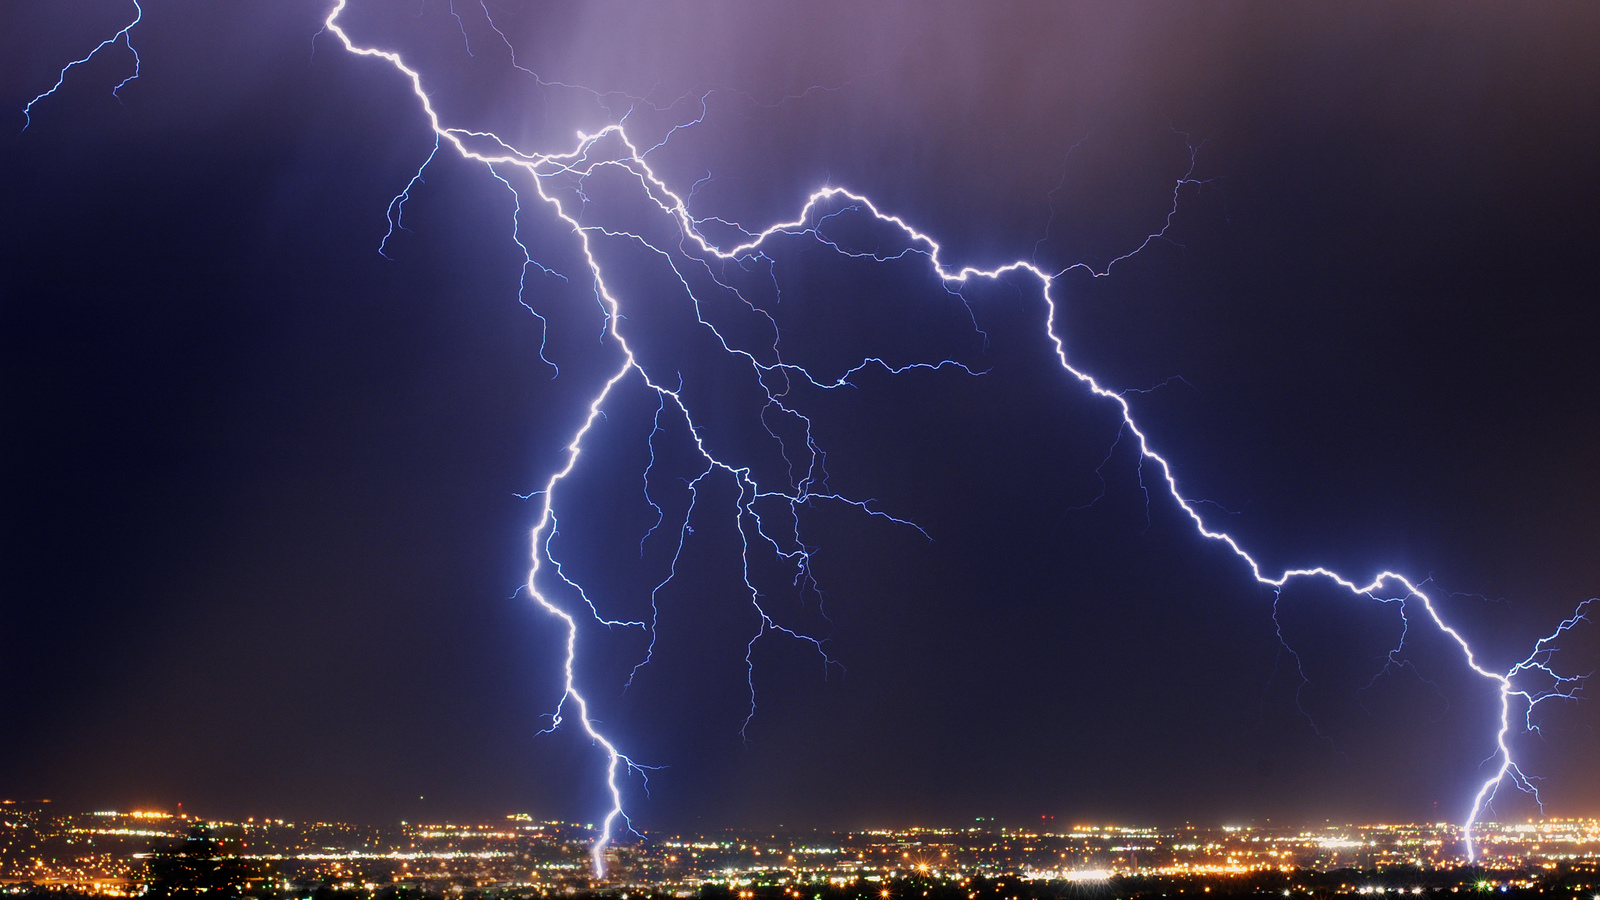 Big W Lighting Thunder And Lightning Facts Earth Nature Eden Channel